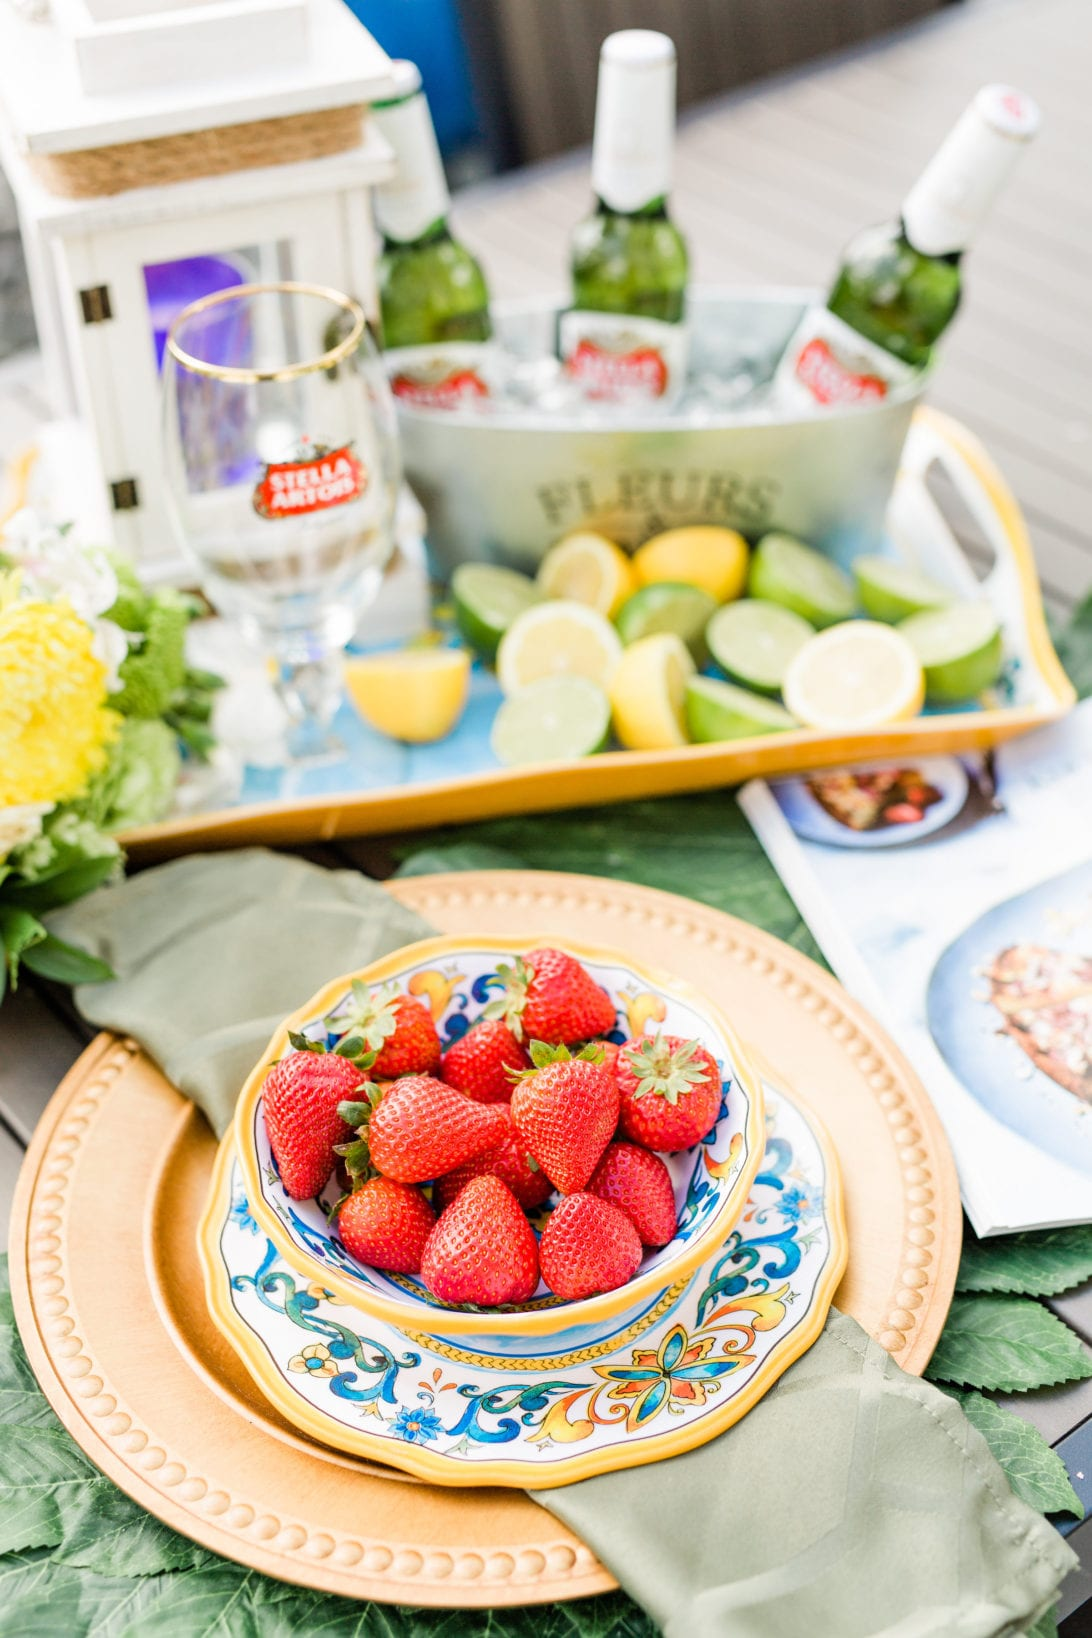 #dawnpdarnell, #summerstyle #houstonblogger, summer entertaining, summer party, soiree, how to throw a summer soiree, tips to throwing a summer soiree, outdoor entertaining, home and gardens, garden party, summer tablescape